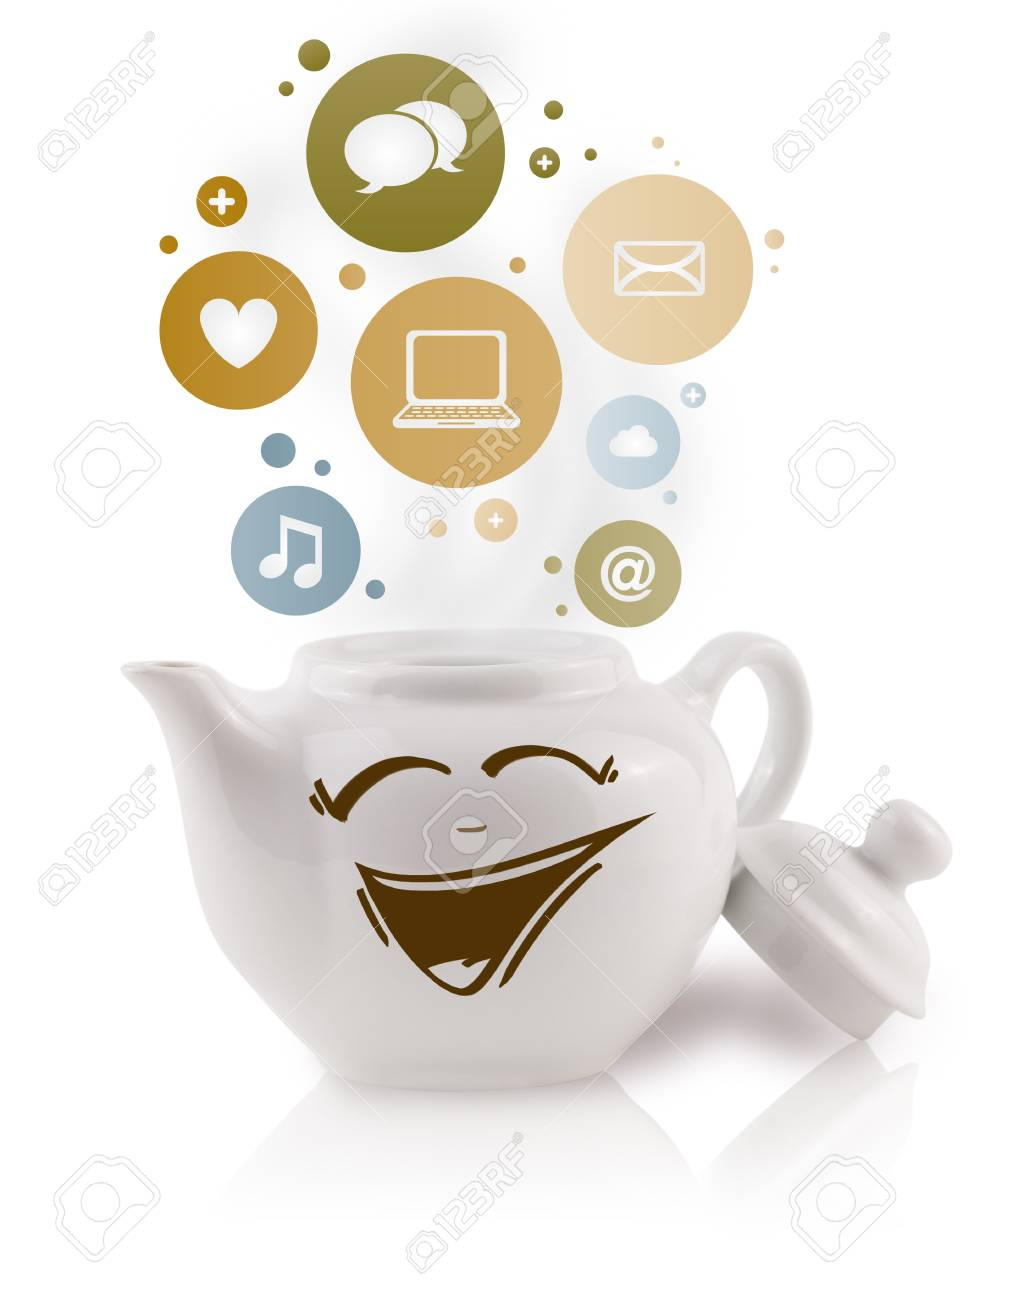 Coffe pot with social and media icons in colorful bubbles, isolated on white Stock Photo - 19664394